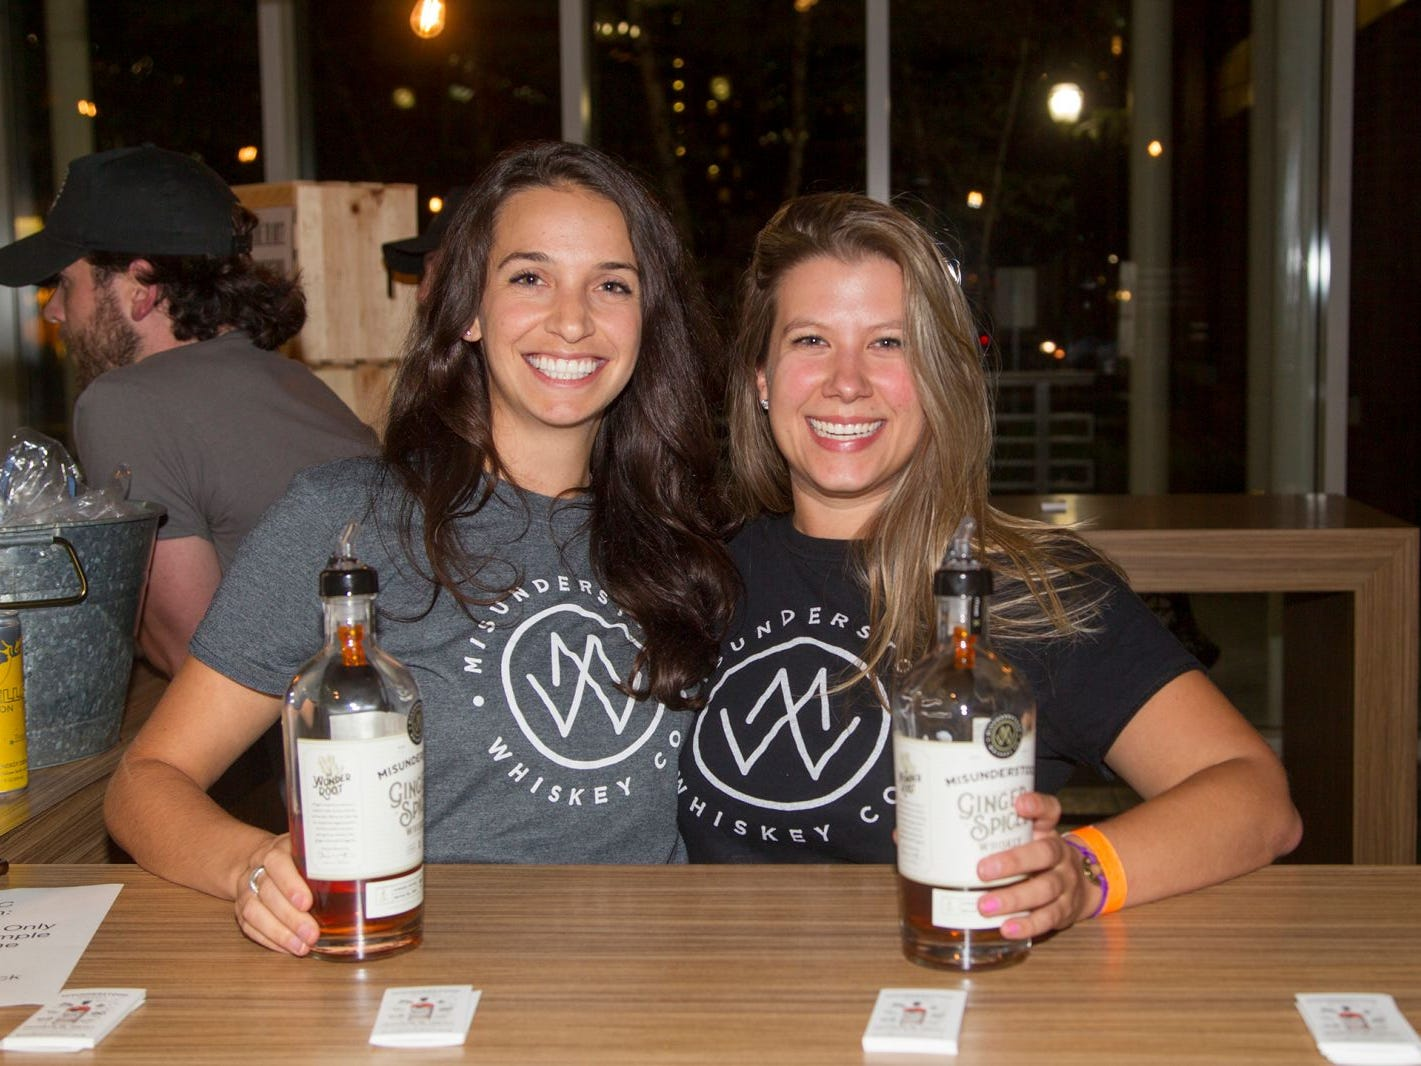 Michelle and Naomi. Jersey City Craft Distillery Fest at the Harborside Atrium featured more than 100 styles of spirits. Guests had the chance to taste craft-distilled spirits from moonshine, rum, cognac, whiskey, vodka, gin, tequila and more. 09/08/2018